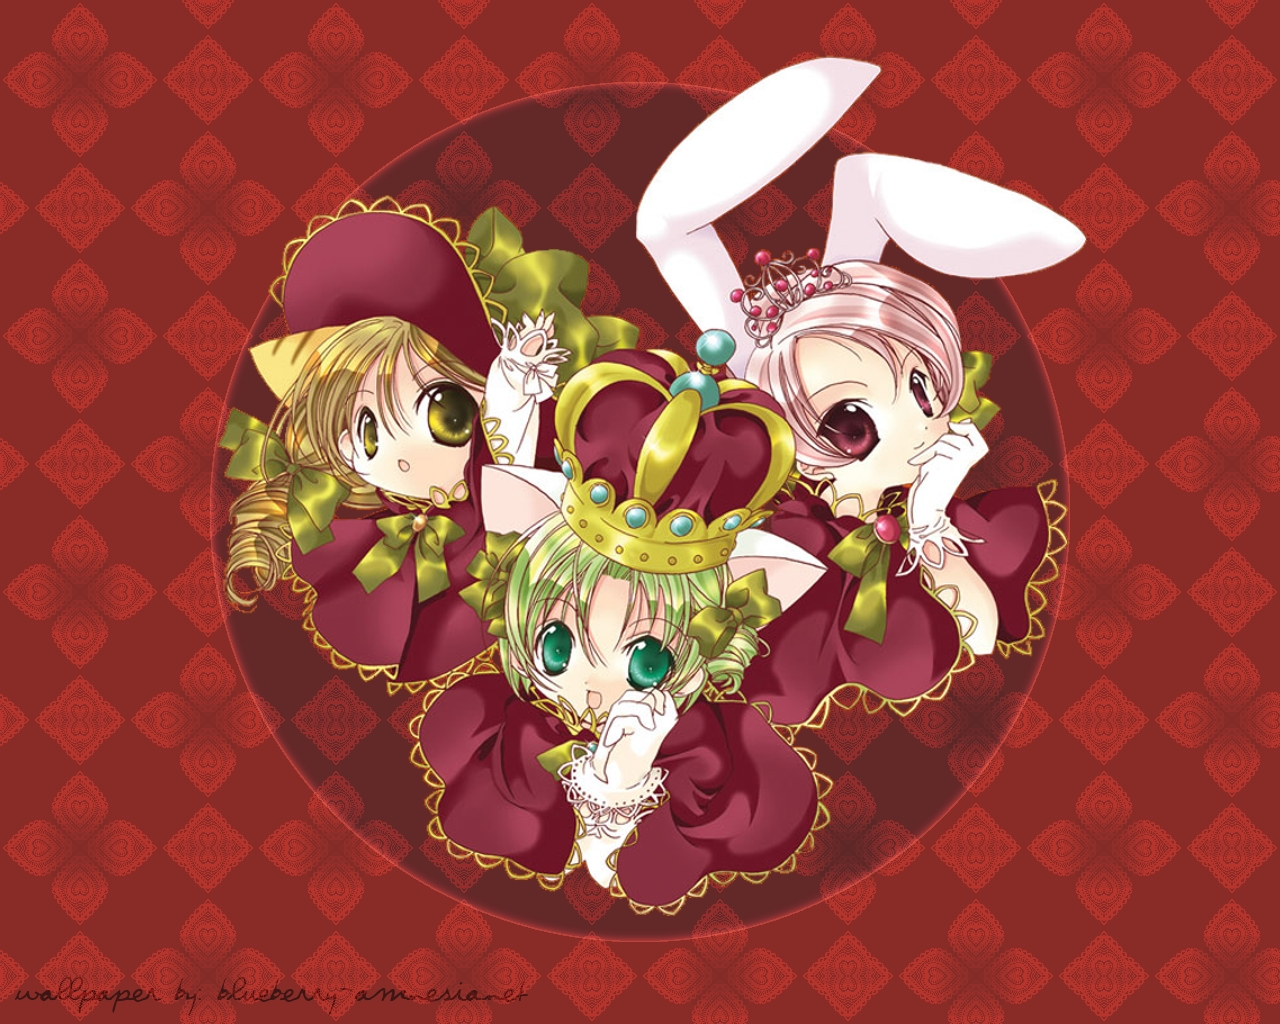 Di Gi Charat Wallpaper by nover